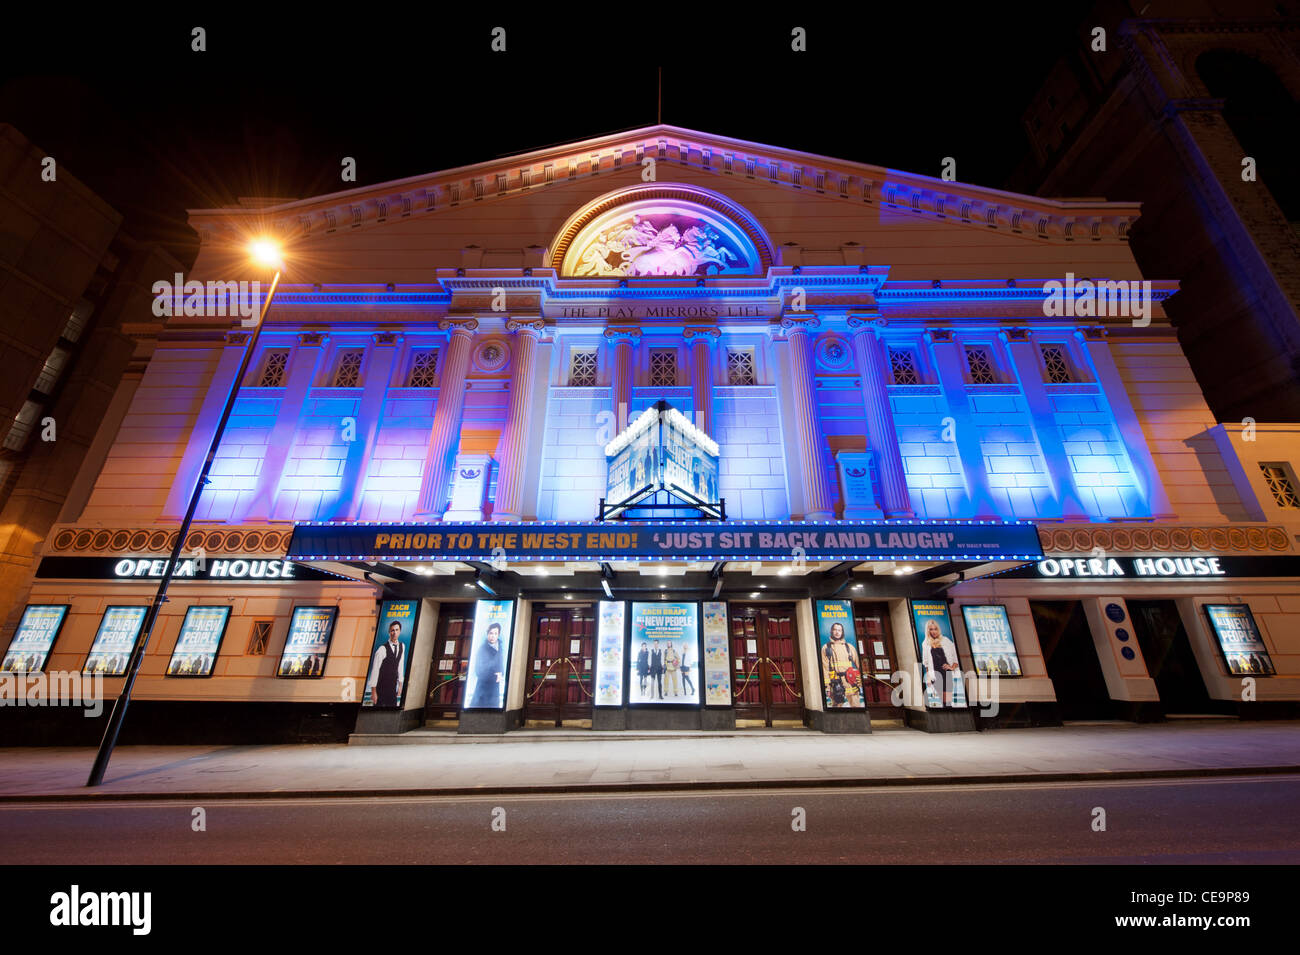 The Opera House theatre on Quay Street in Manchester, taken on a dark night. - Stock Image